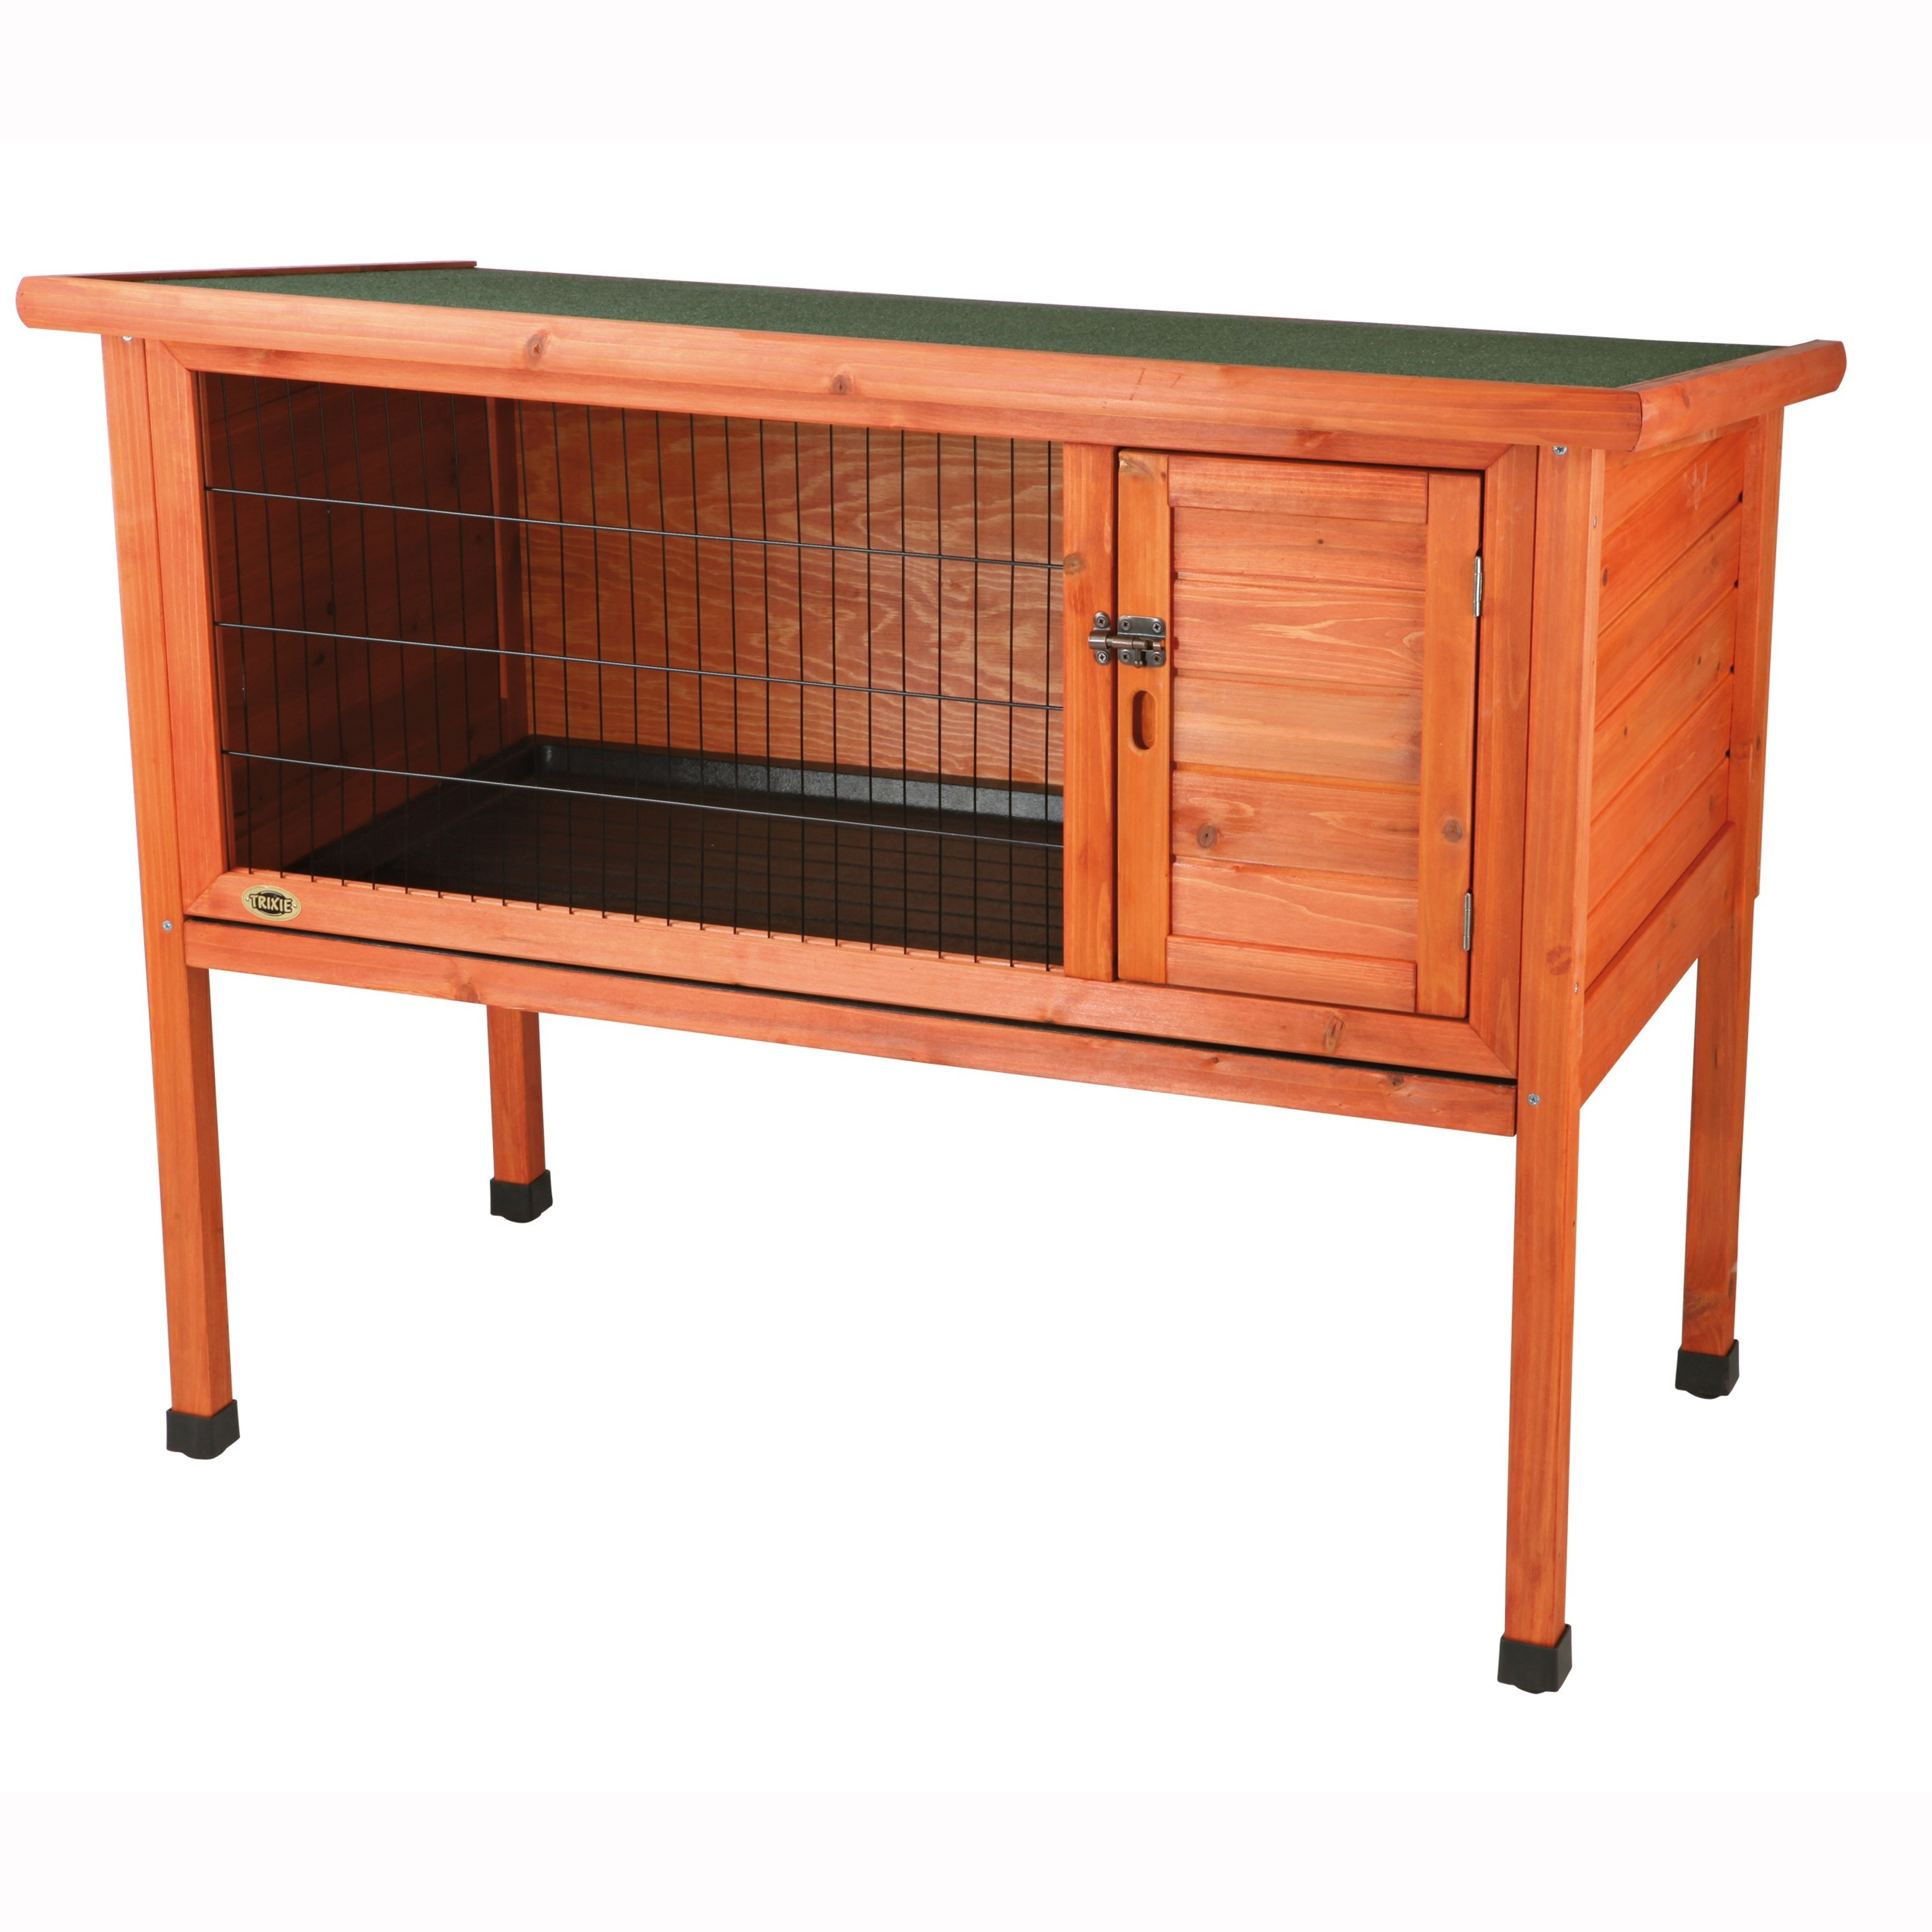 Trixie Pet 1-Story Rabbit Hutch (L)